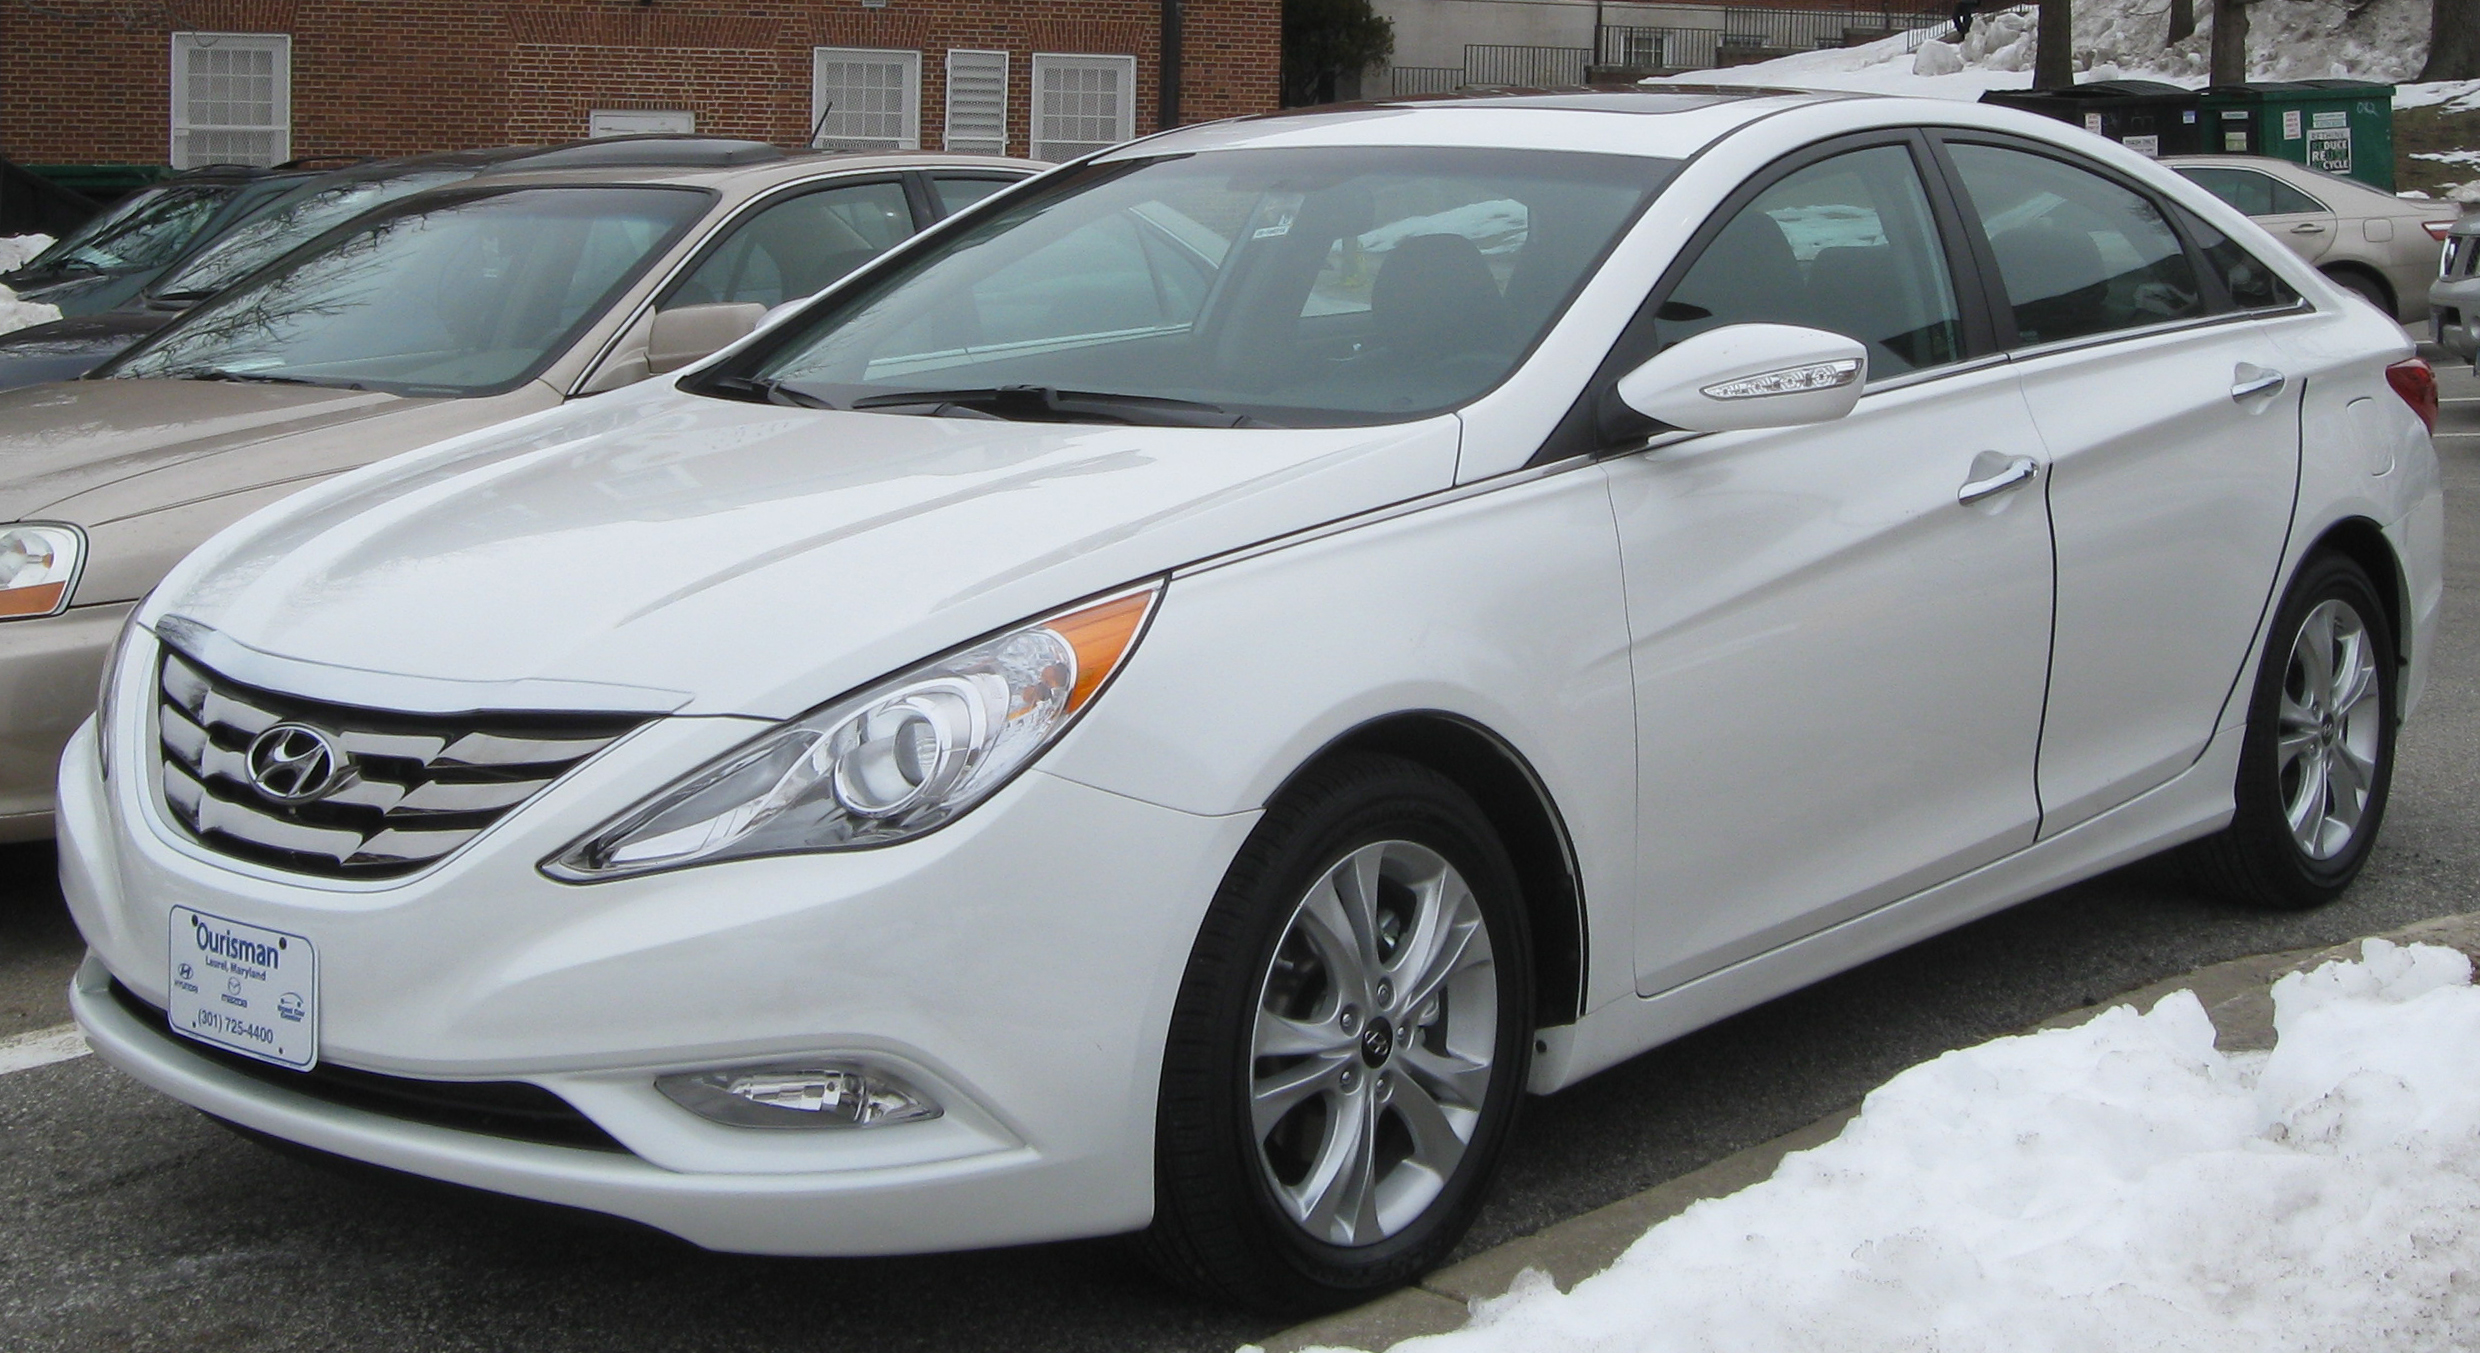 Hyundai Sonata Limited Car Wallpapers Desktop Download